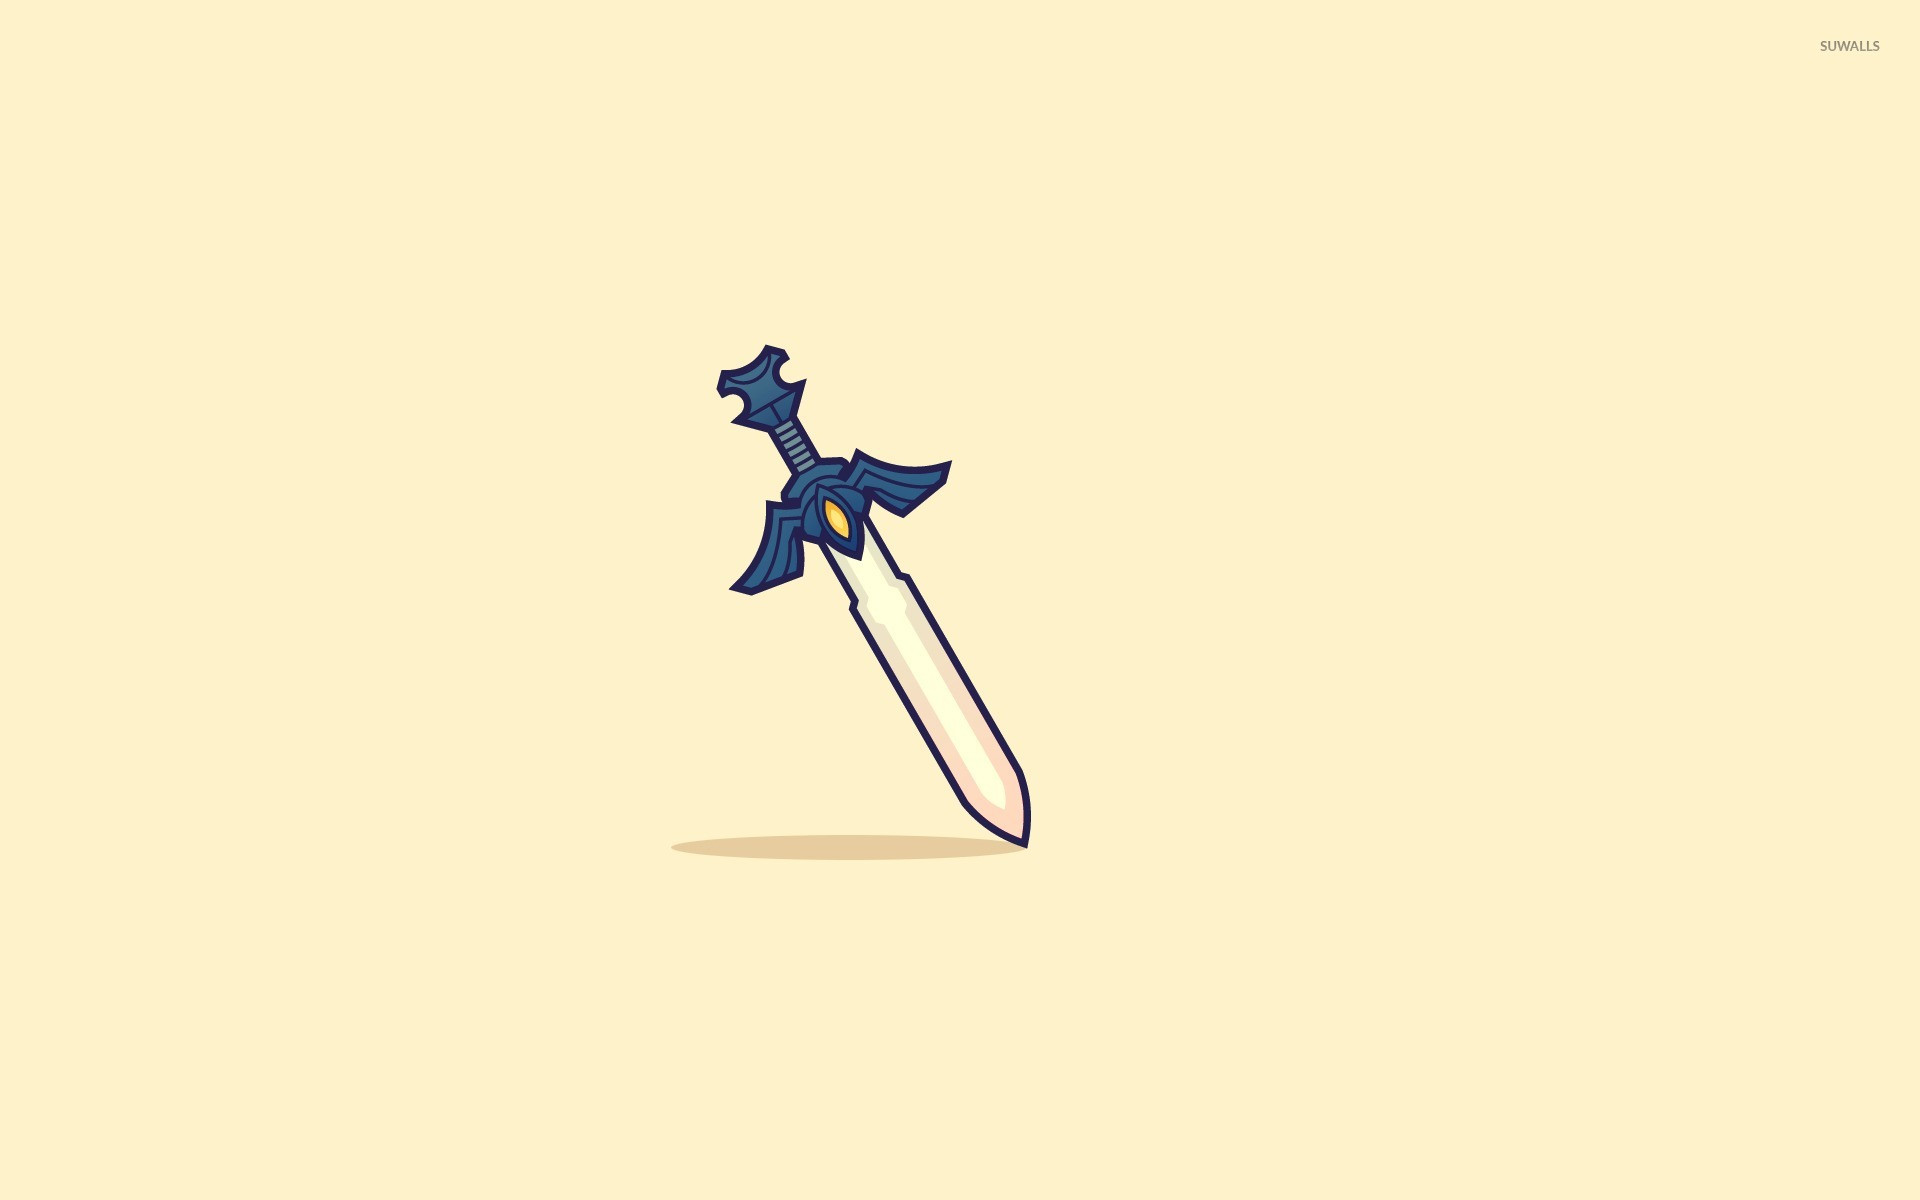 zelda minimalist wallpaper - photo #27